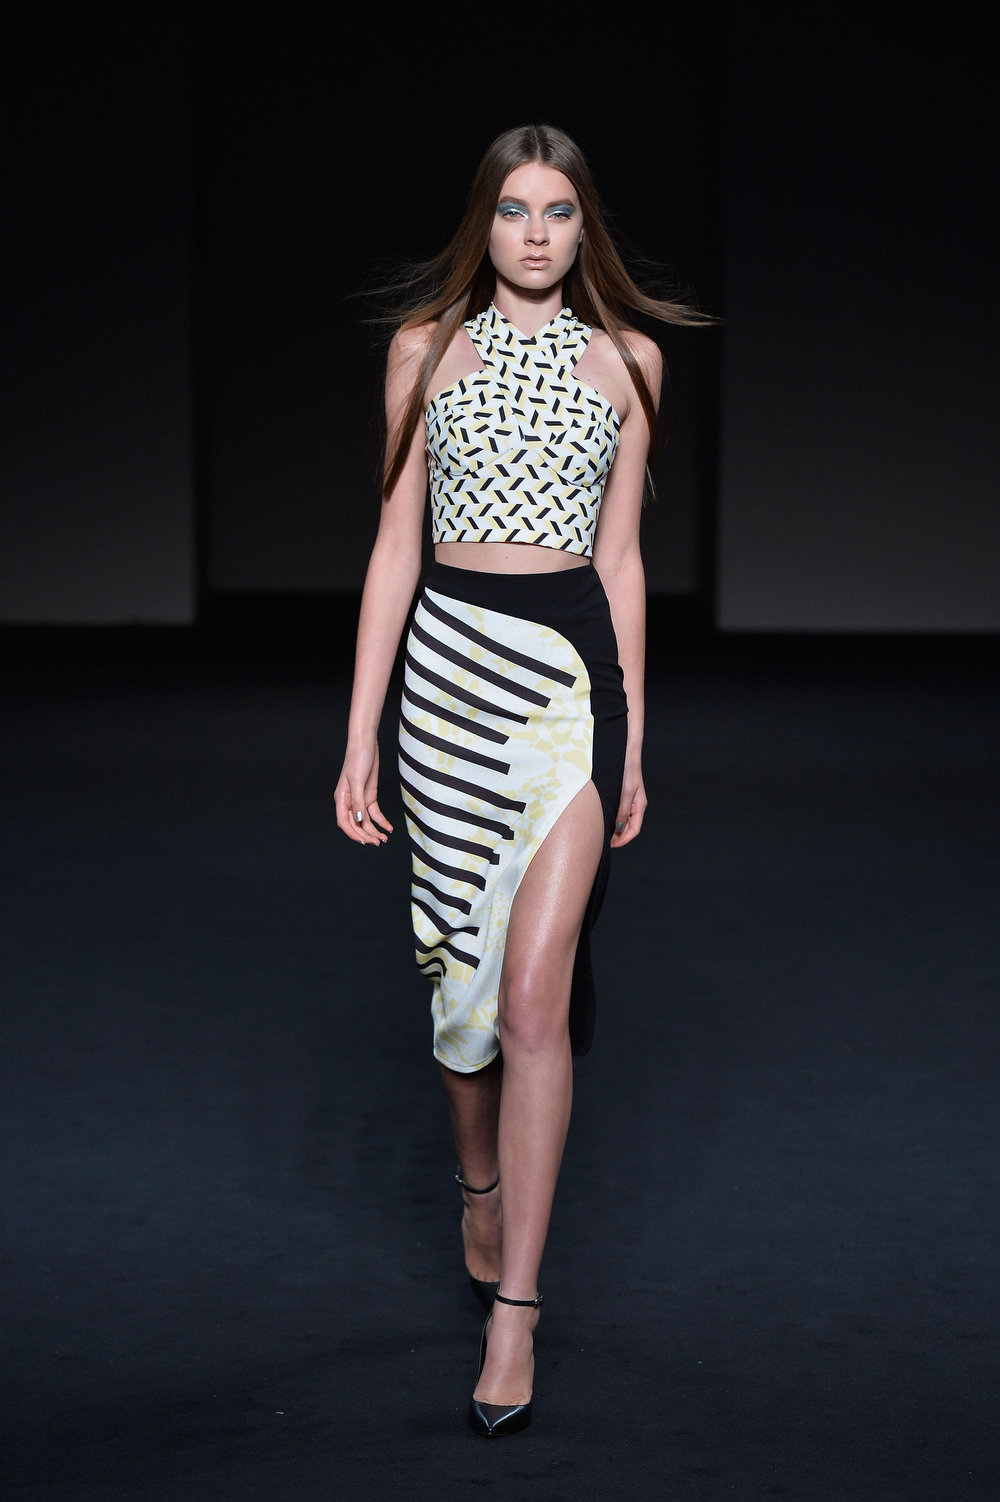 . A model showcases designs on the runway at the By Johnny show during Mercedes-Benz Fashion Week Australia Spring/Summer 2013/14 at Carriageworks on April 8, 2013 in Sydney, Australia.  (Photo by Stefan Gosatti/Getty Images)